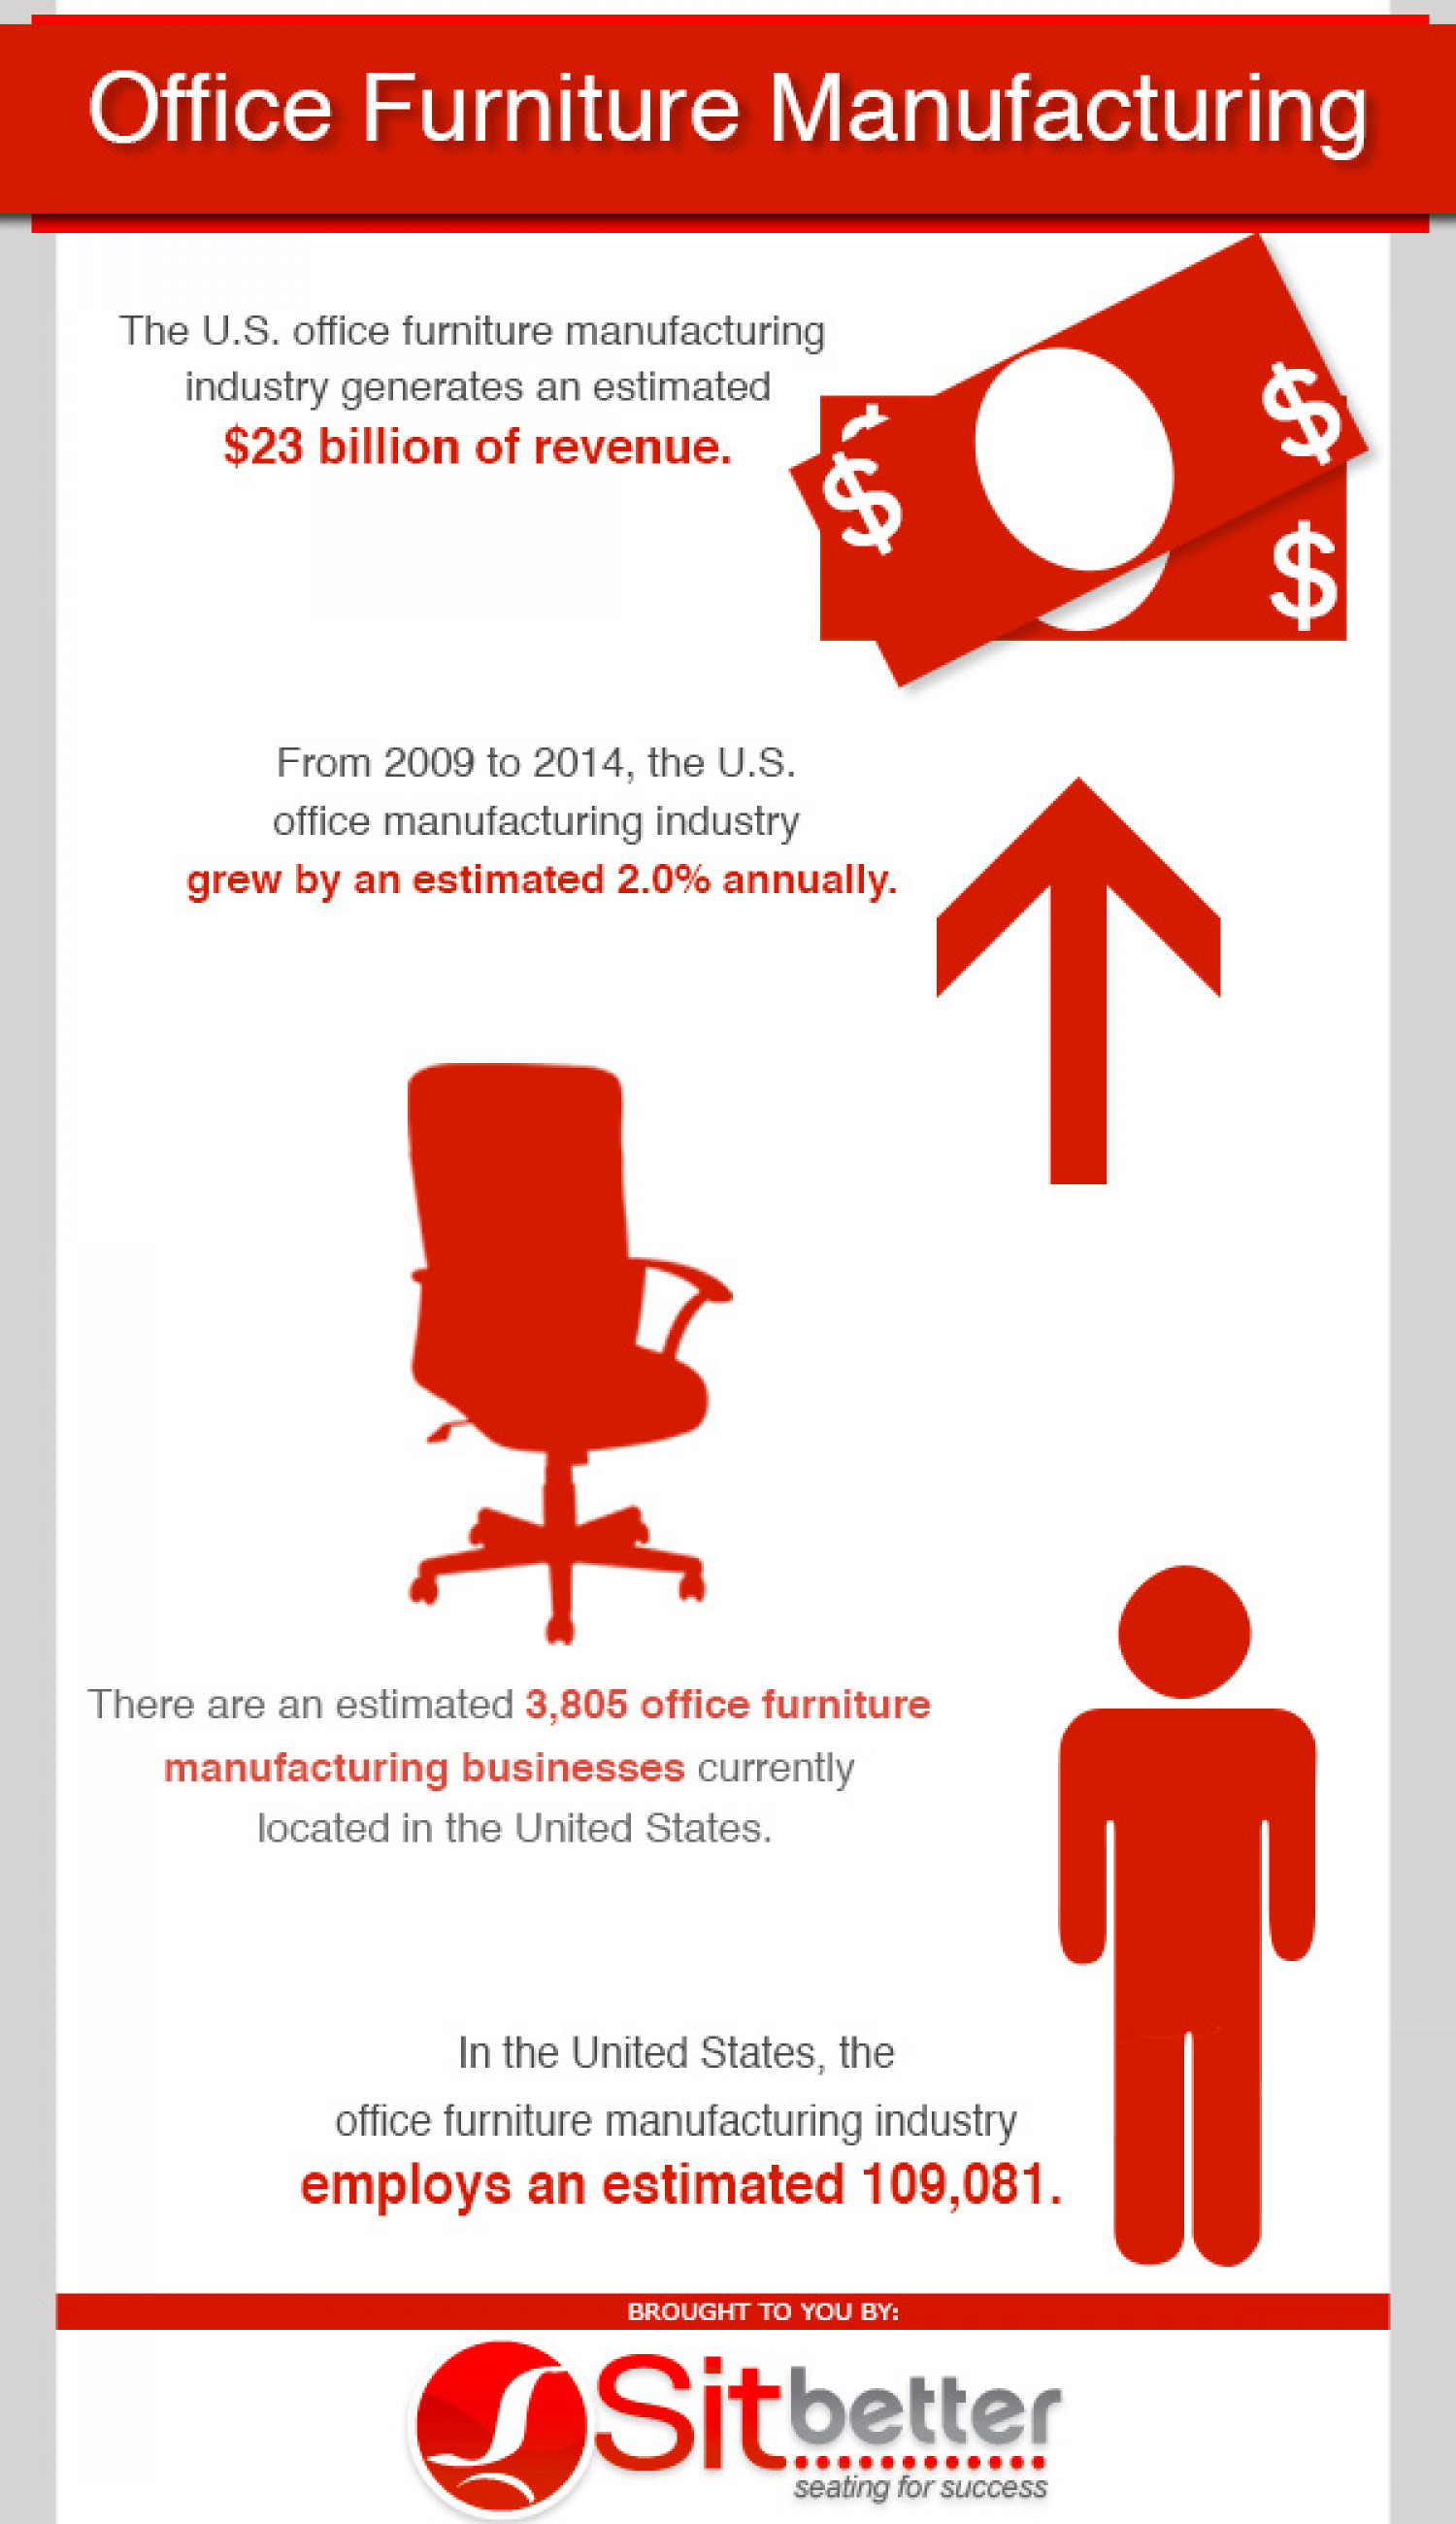 Office Furniture Manufacturing